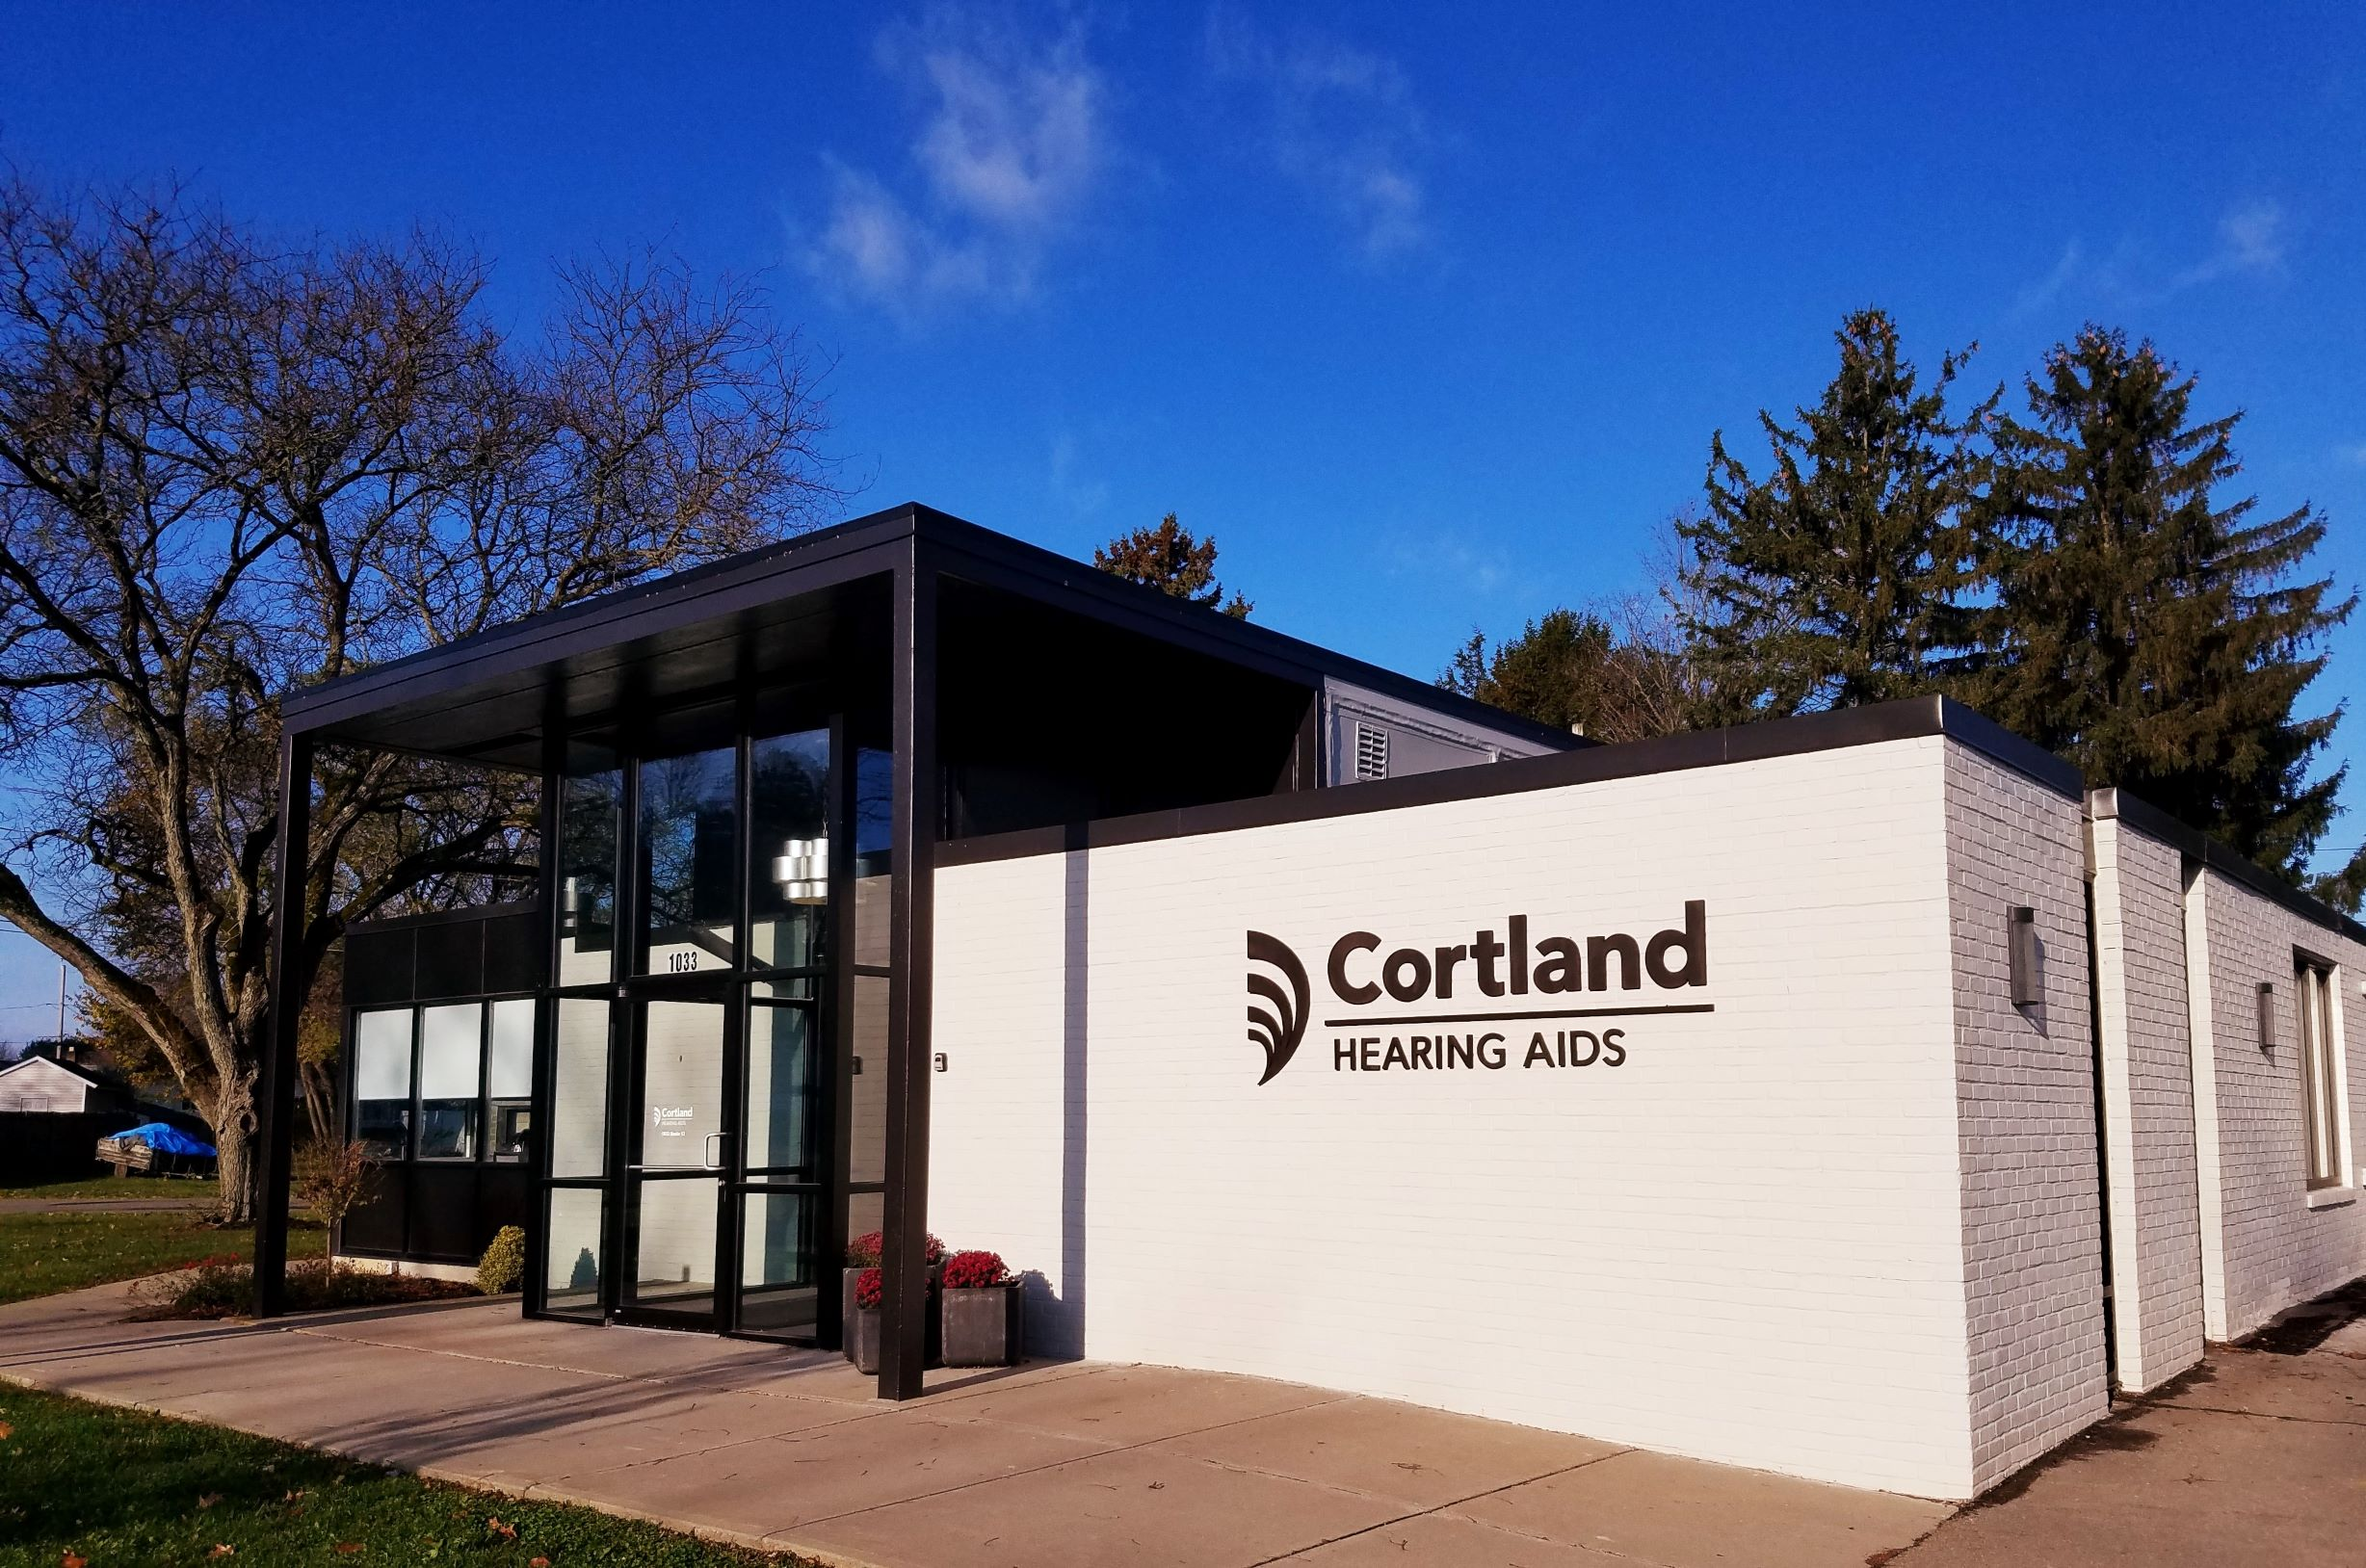 Exterior of Cortland Hearing Aids